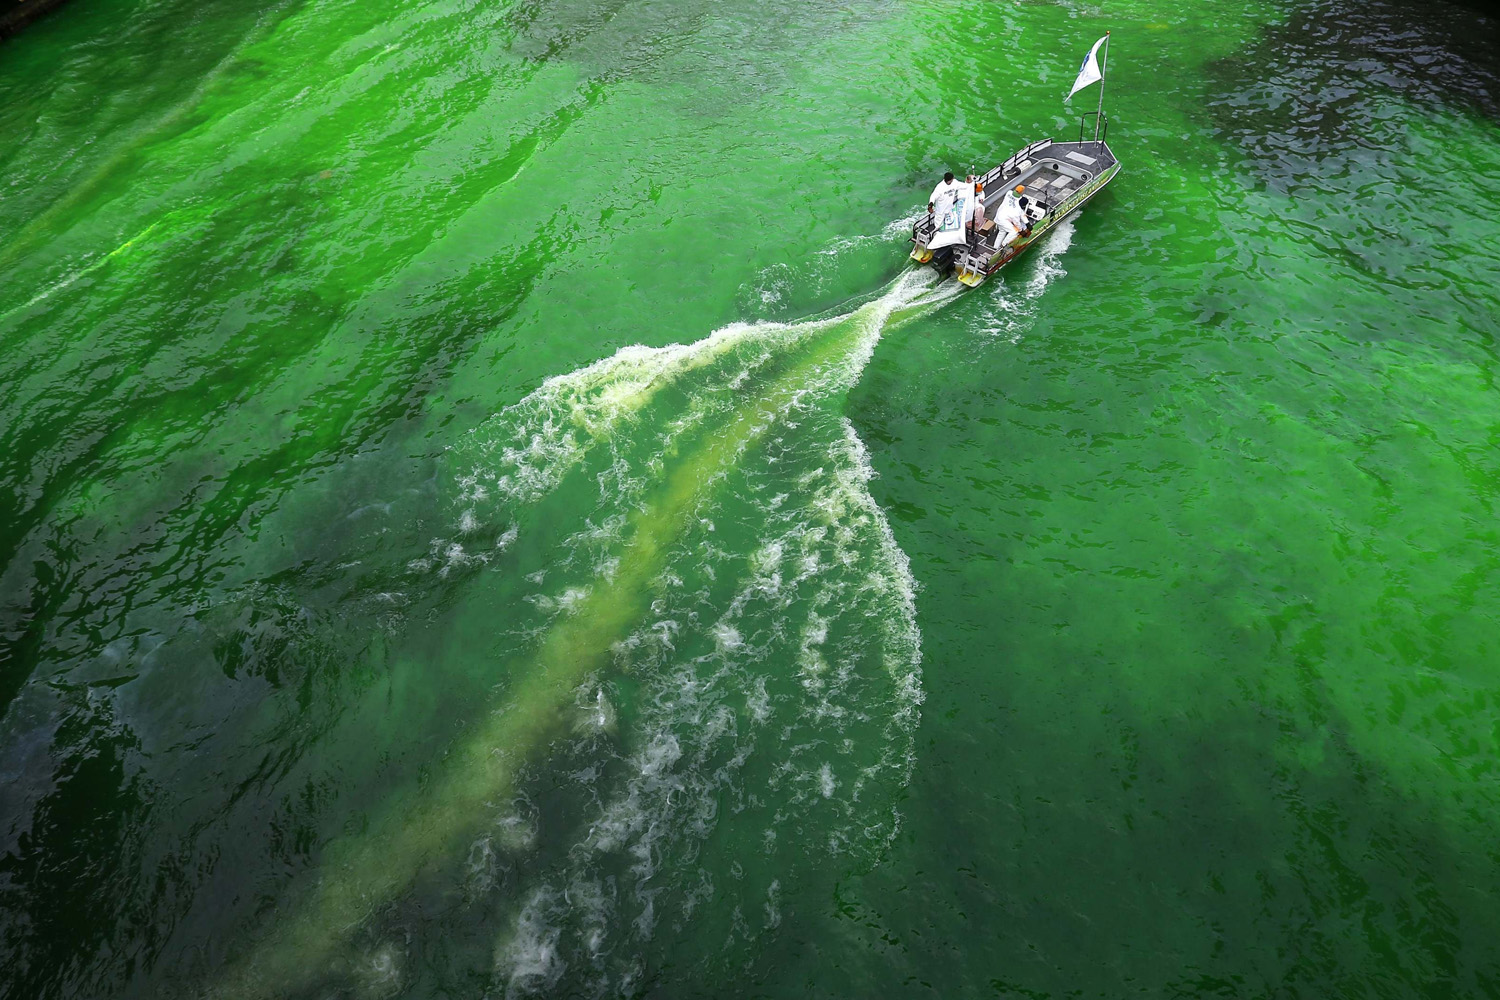 Mar. 15, 2014.  The Chicago River was dyed green in celebration of St. Patrick's Day.